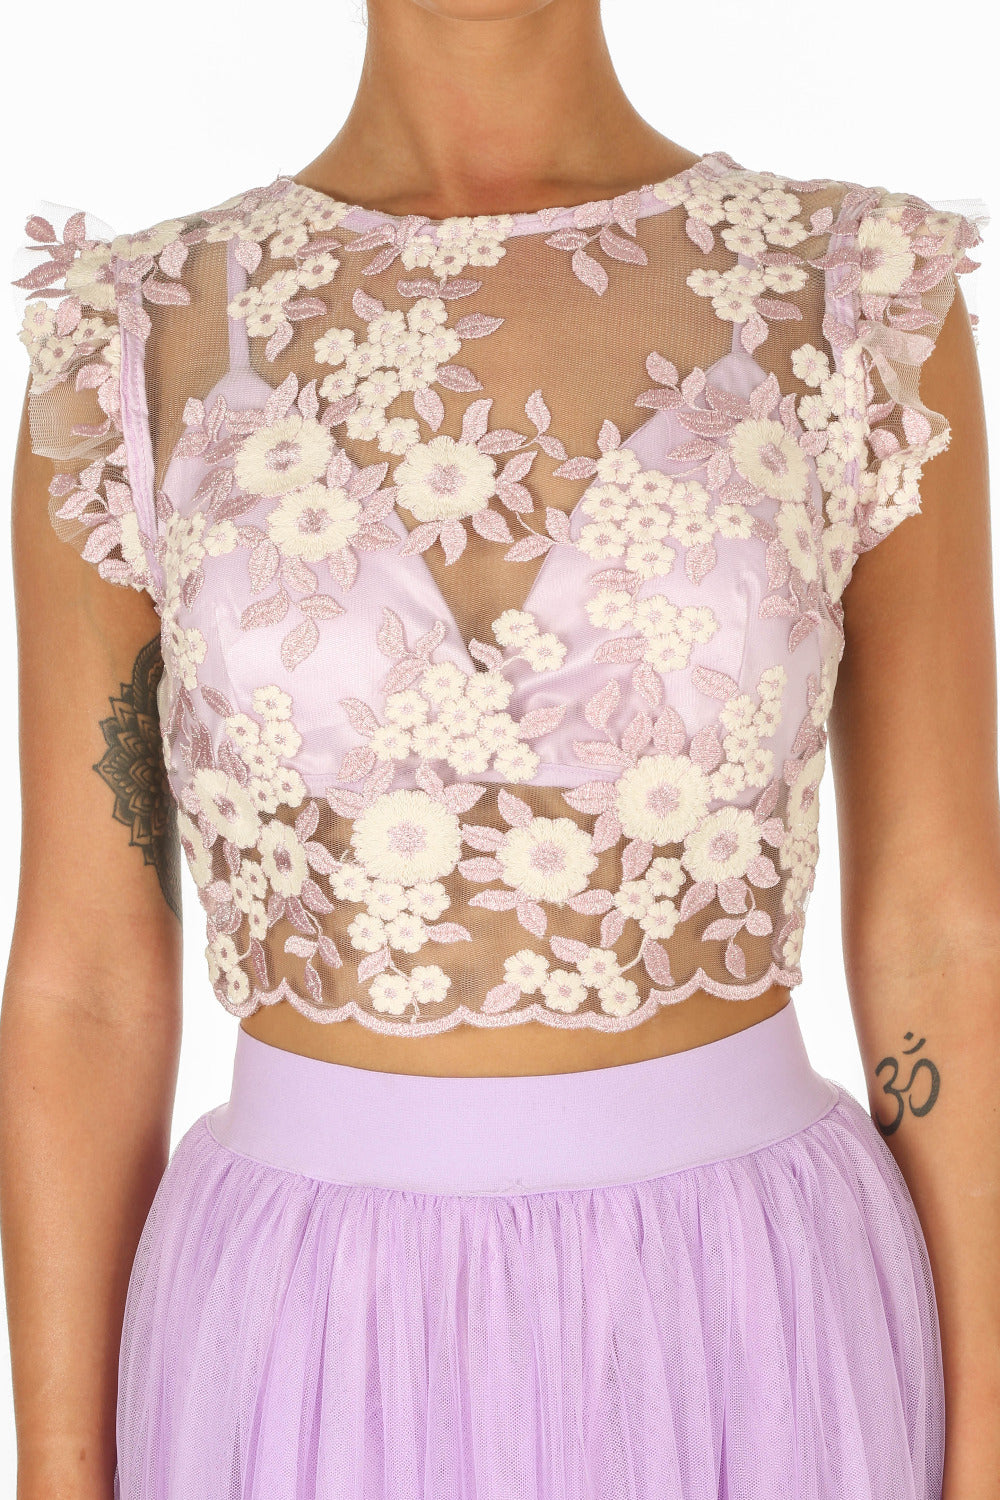 Embroidered Crop Top With Bralet Underlay In Lilac